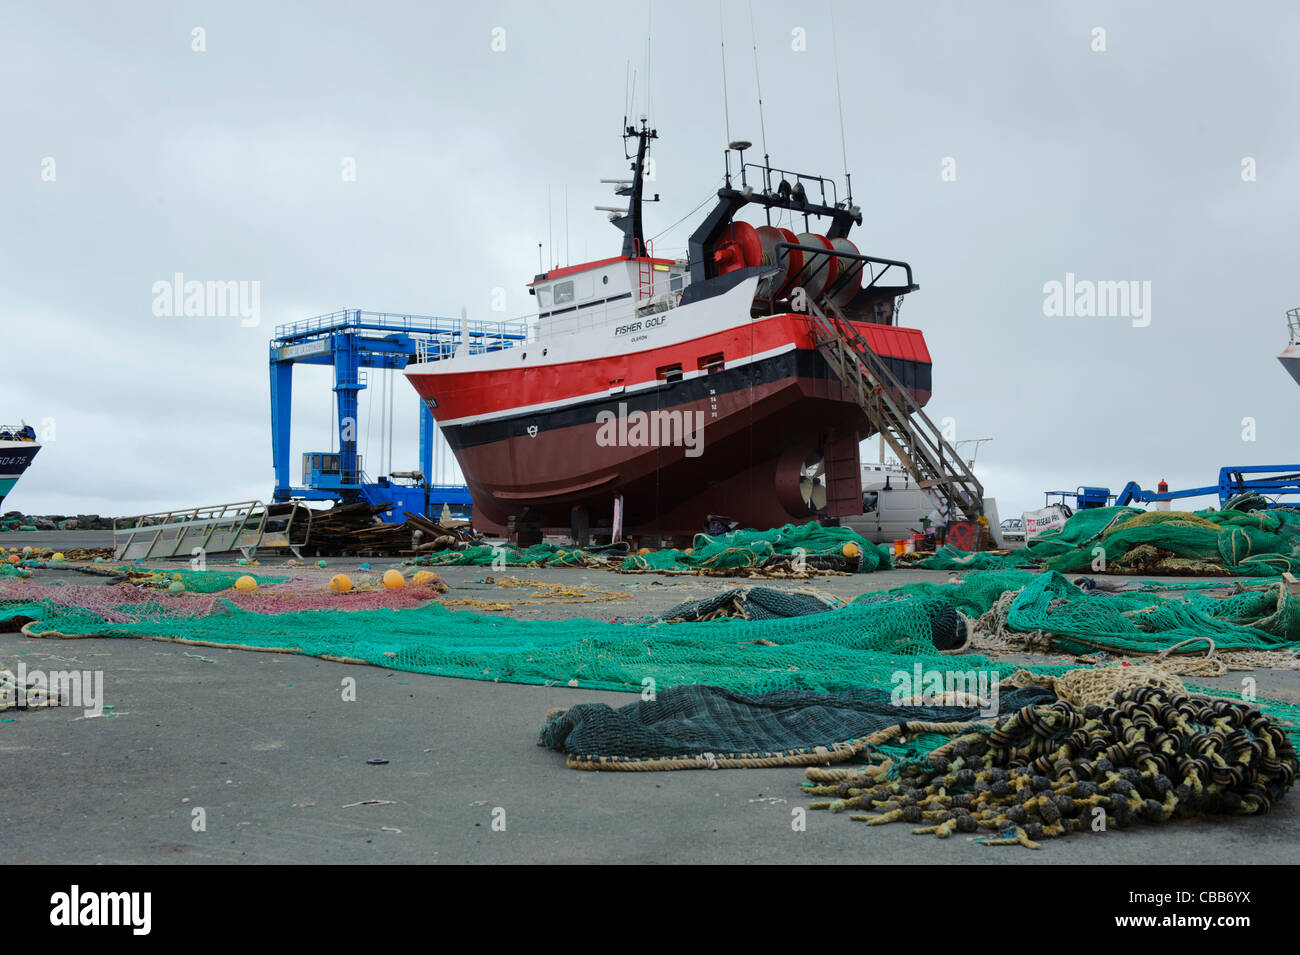 Stock photo of fishing boats in dry dock. - Stock Image